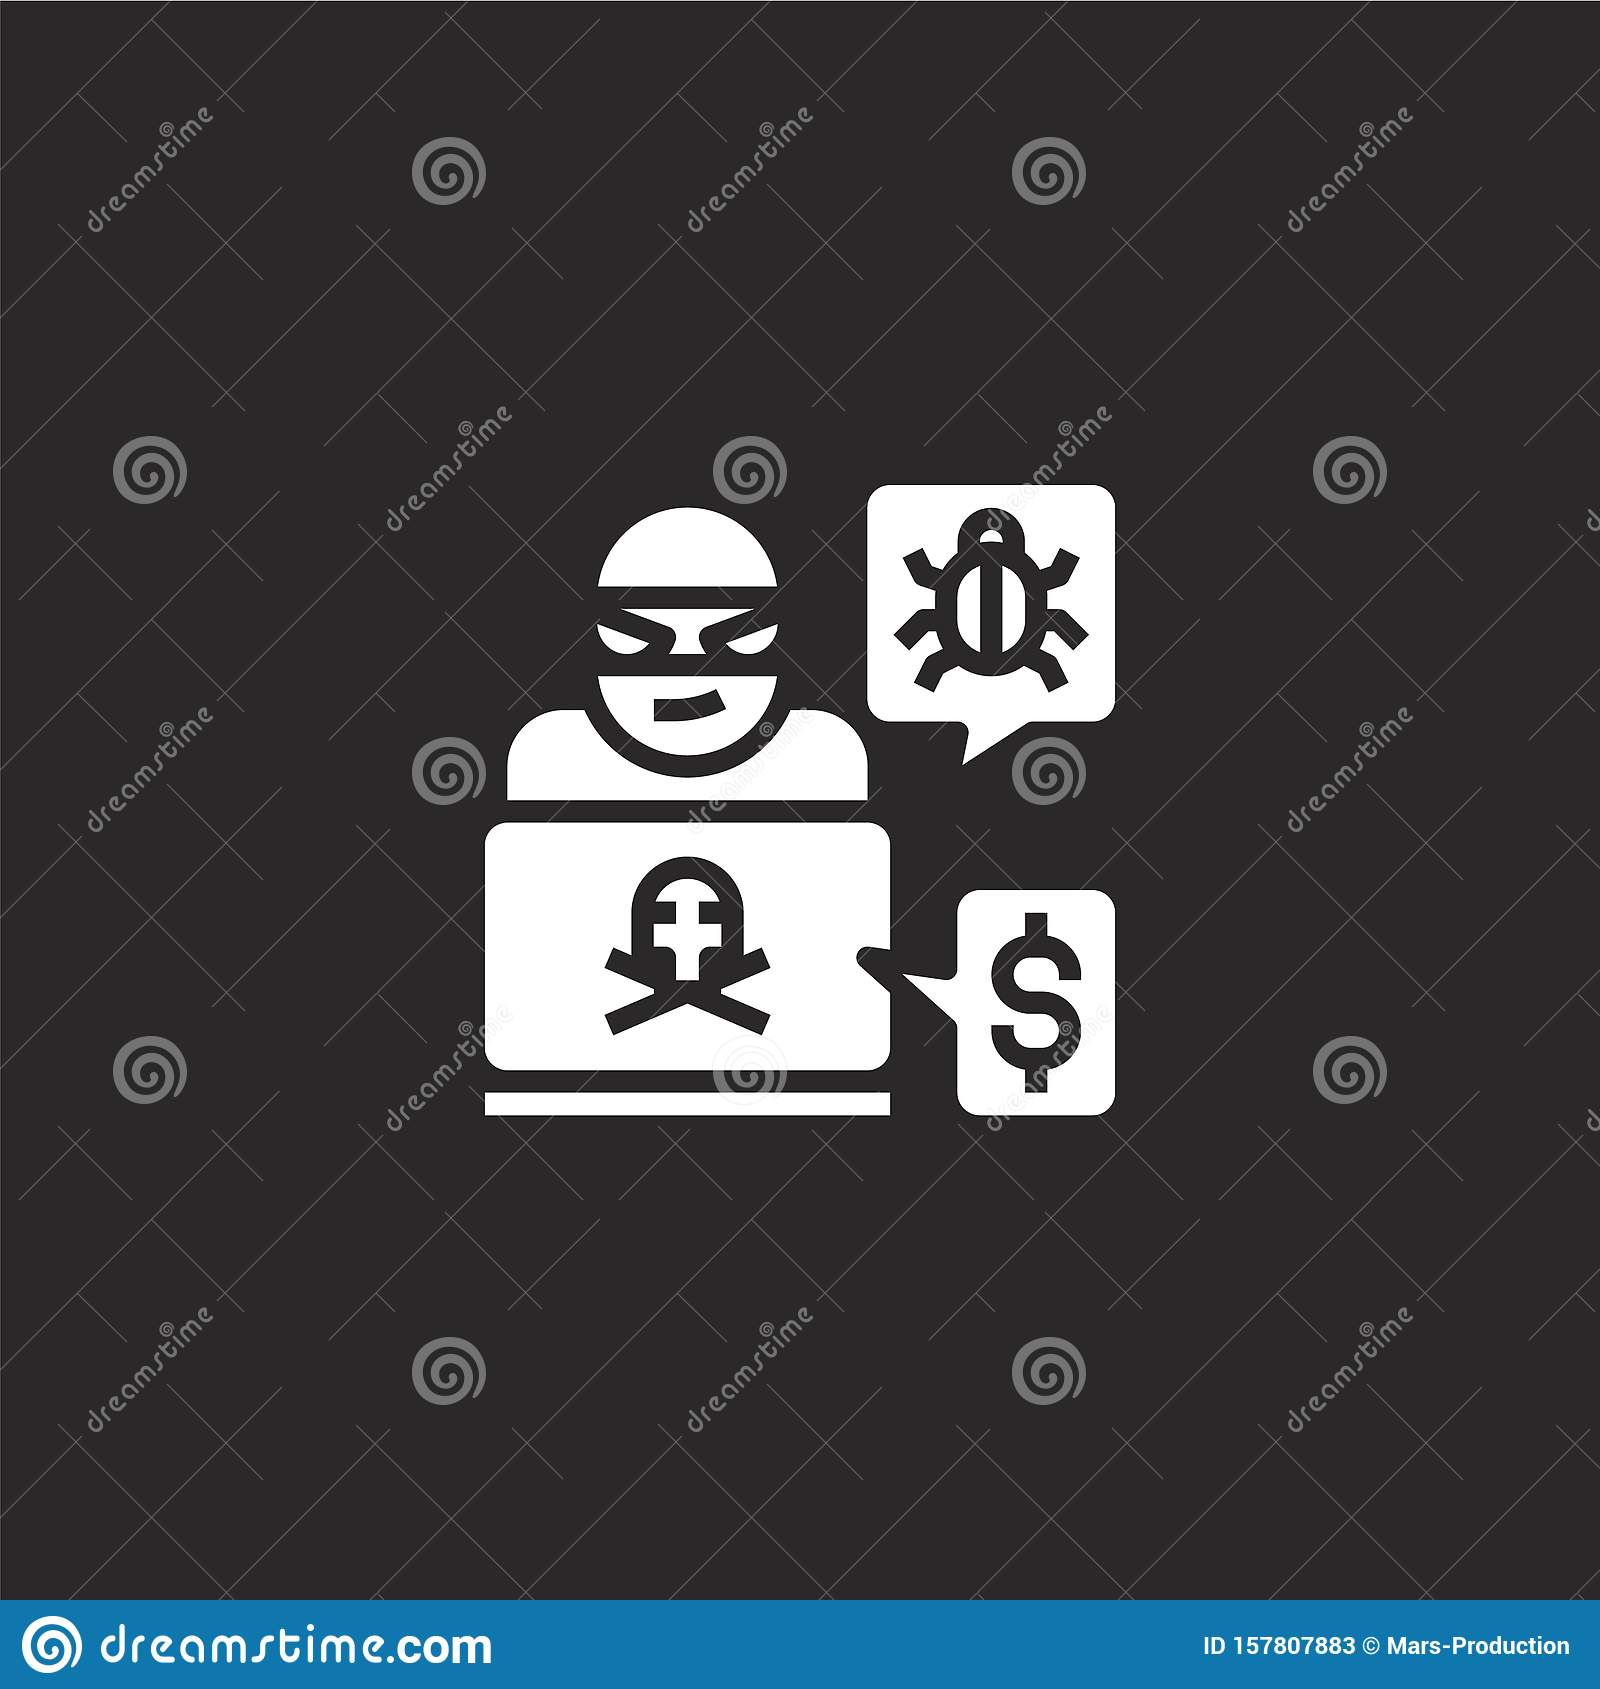 Hacker Icon Filled Hacker Icon For Website Design And Mobile App Development Hacker Icon From Filled Cyber Security Collection Stock Vector Illustration Of Icon Background 157807883